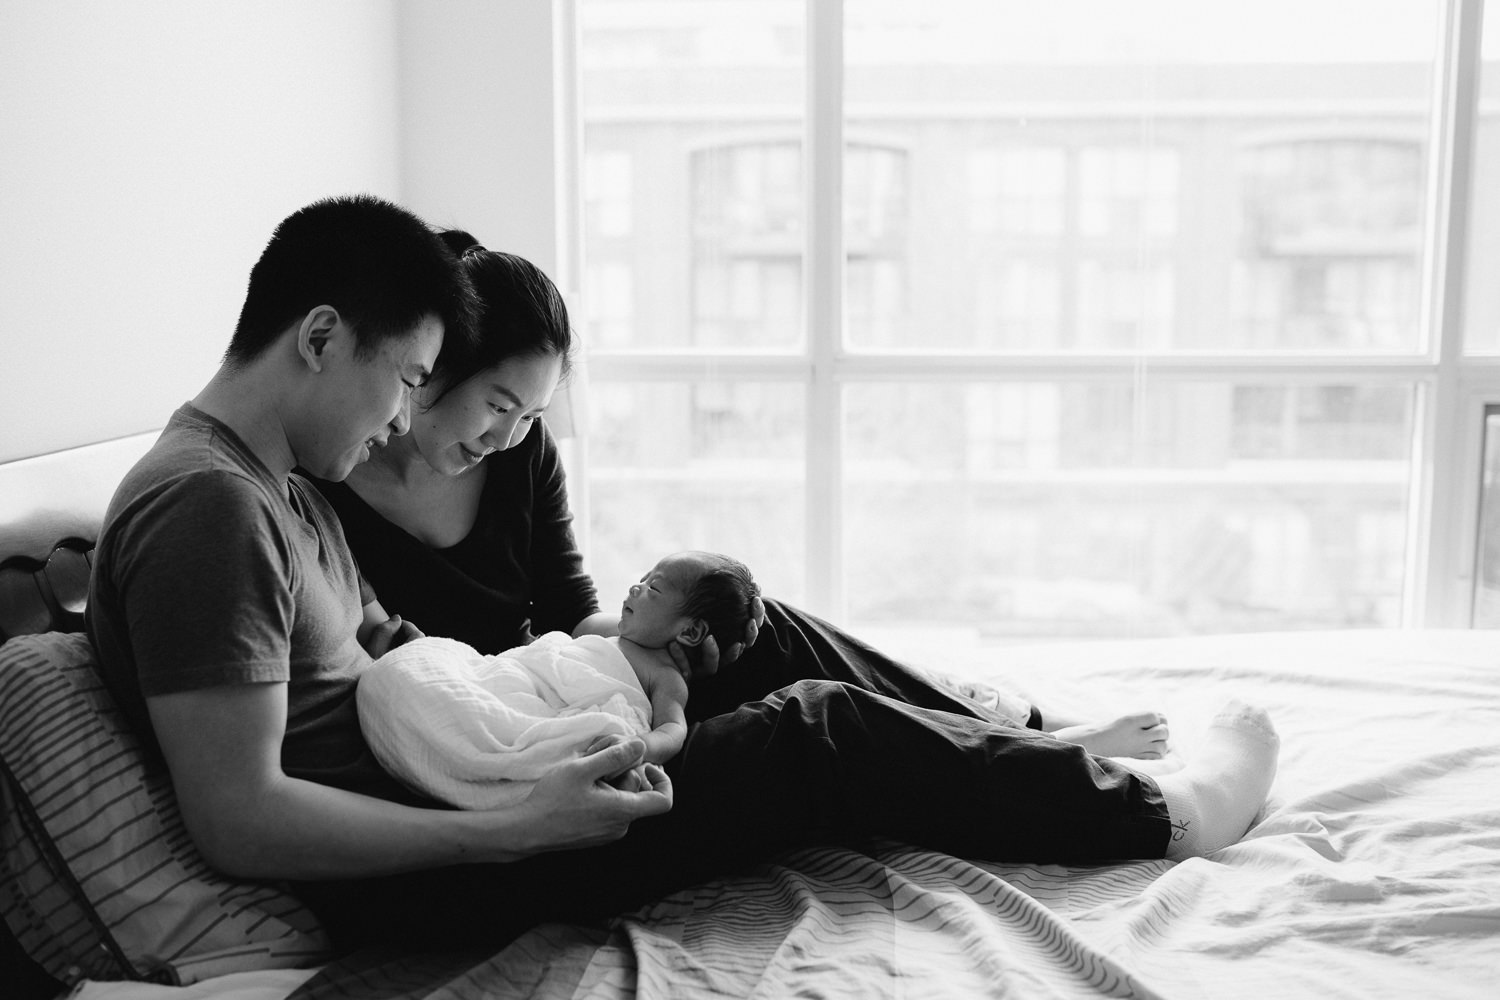 new parents snuggle and look at 2 week old baby boy while sitting in bed - Barrie lifestyle photography